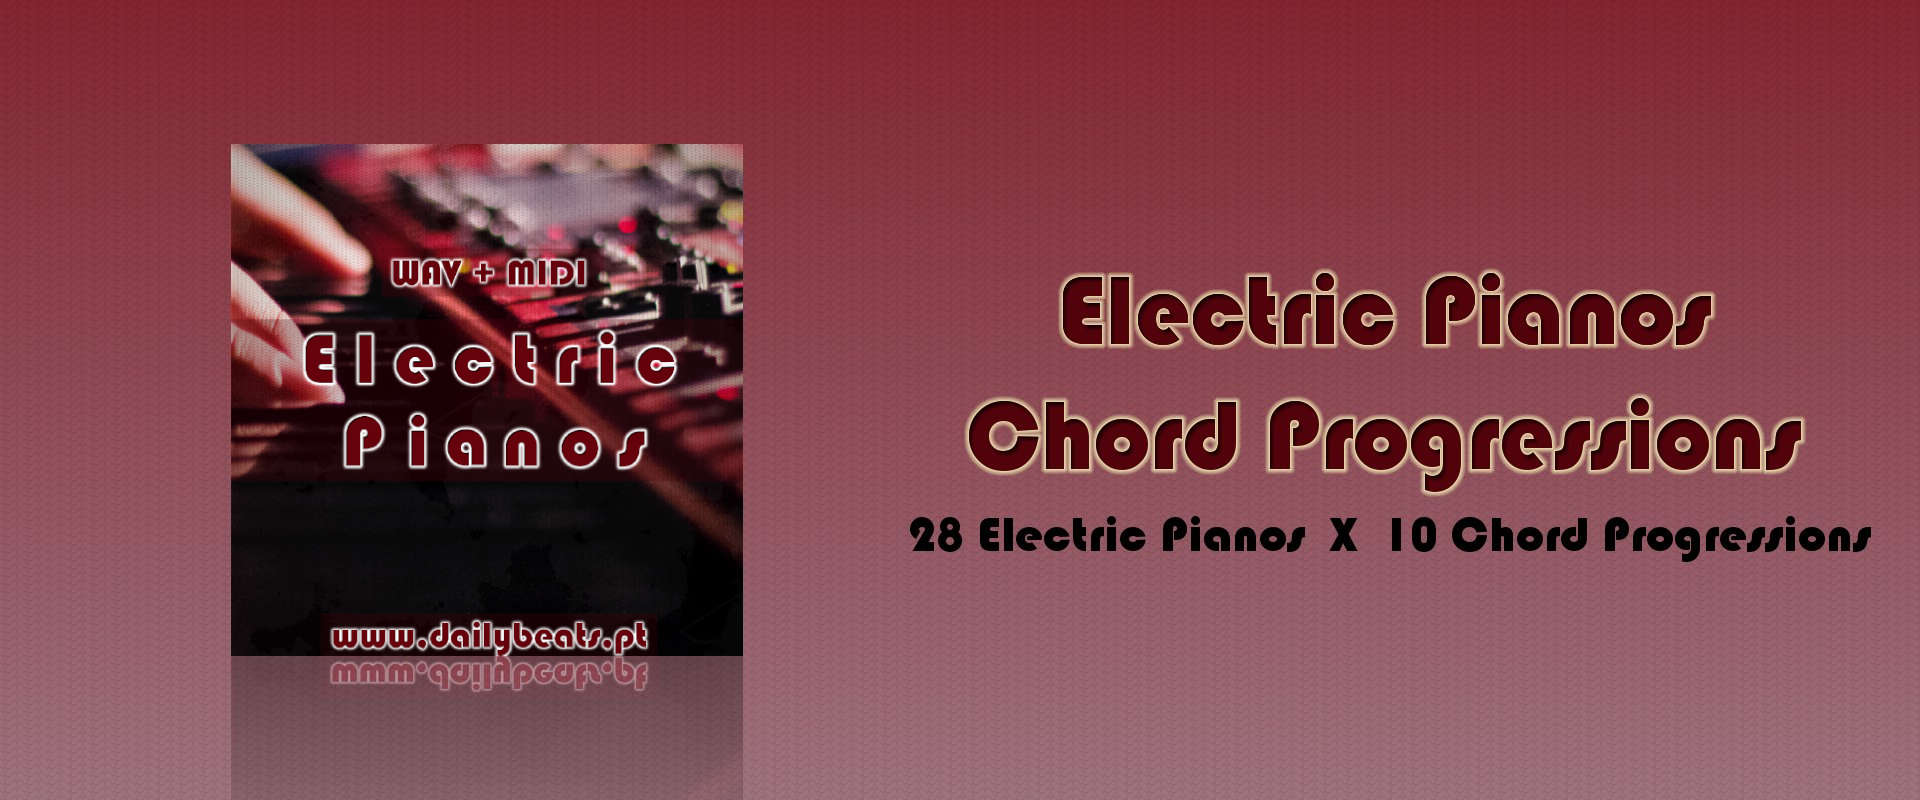 Electric Pianos Chord Progressions Banner